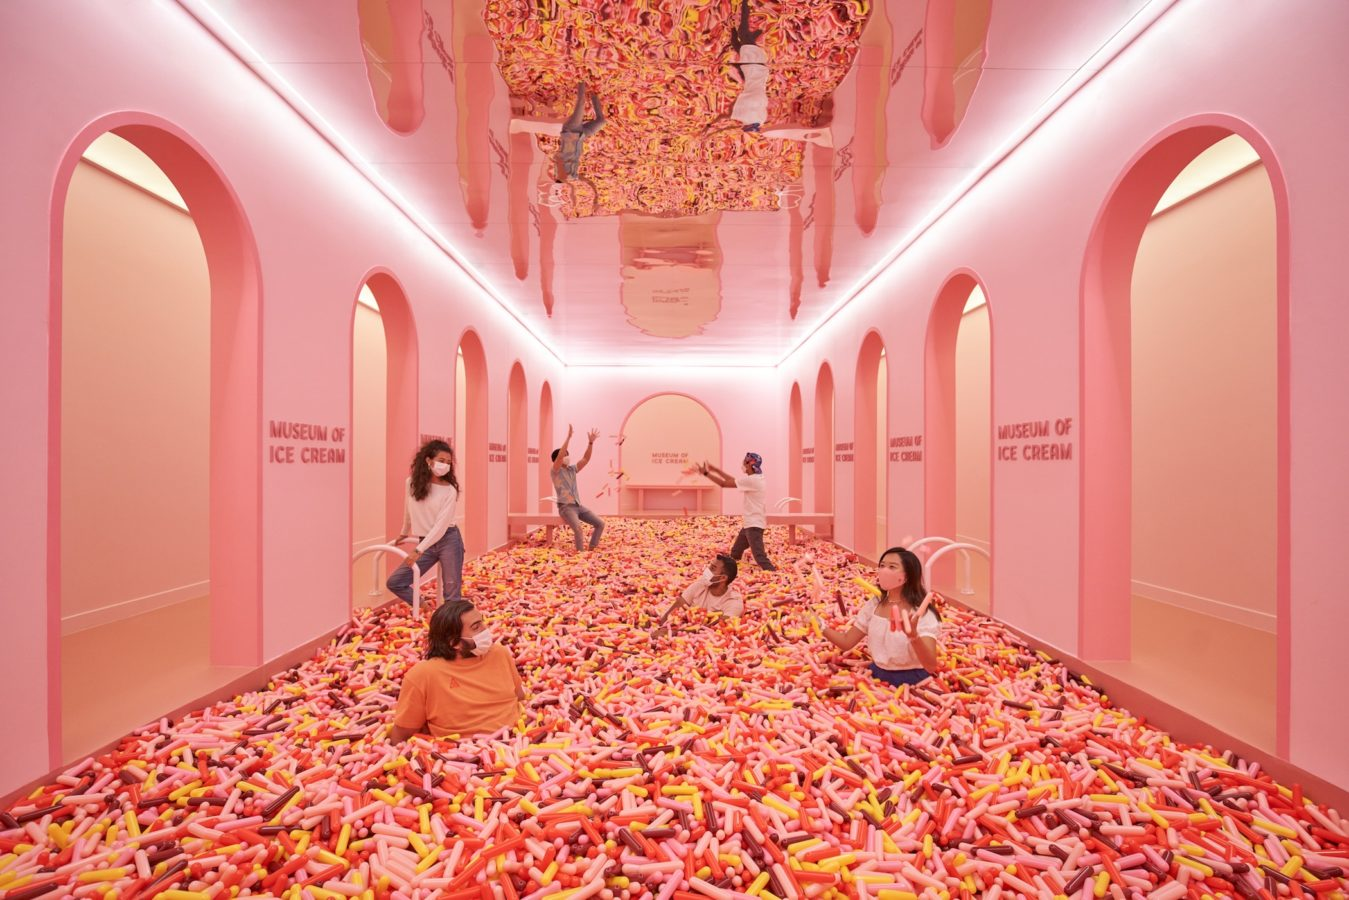 What to expect from the Museum of Ice Cream Singapore